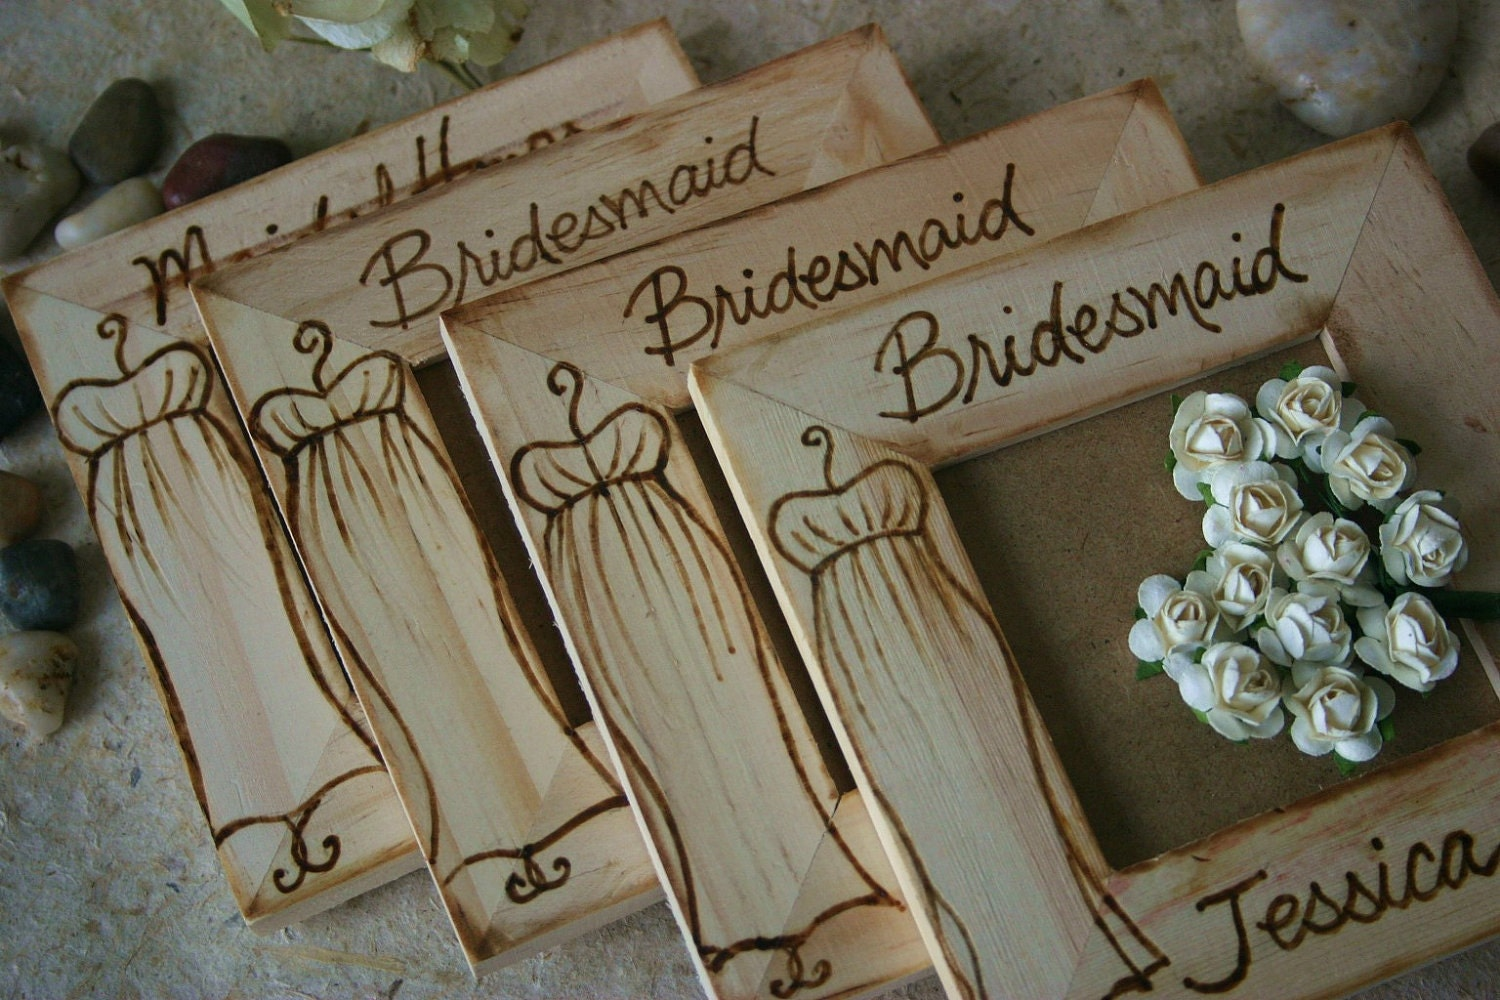 Gifts For Bride On Wedding Day From Bridesmaid: Personalized Bridesmaid Favors Gifts Bridal Party Gifts